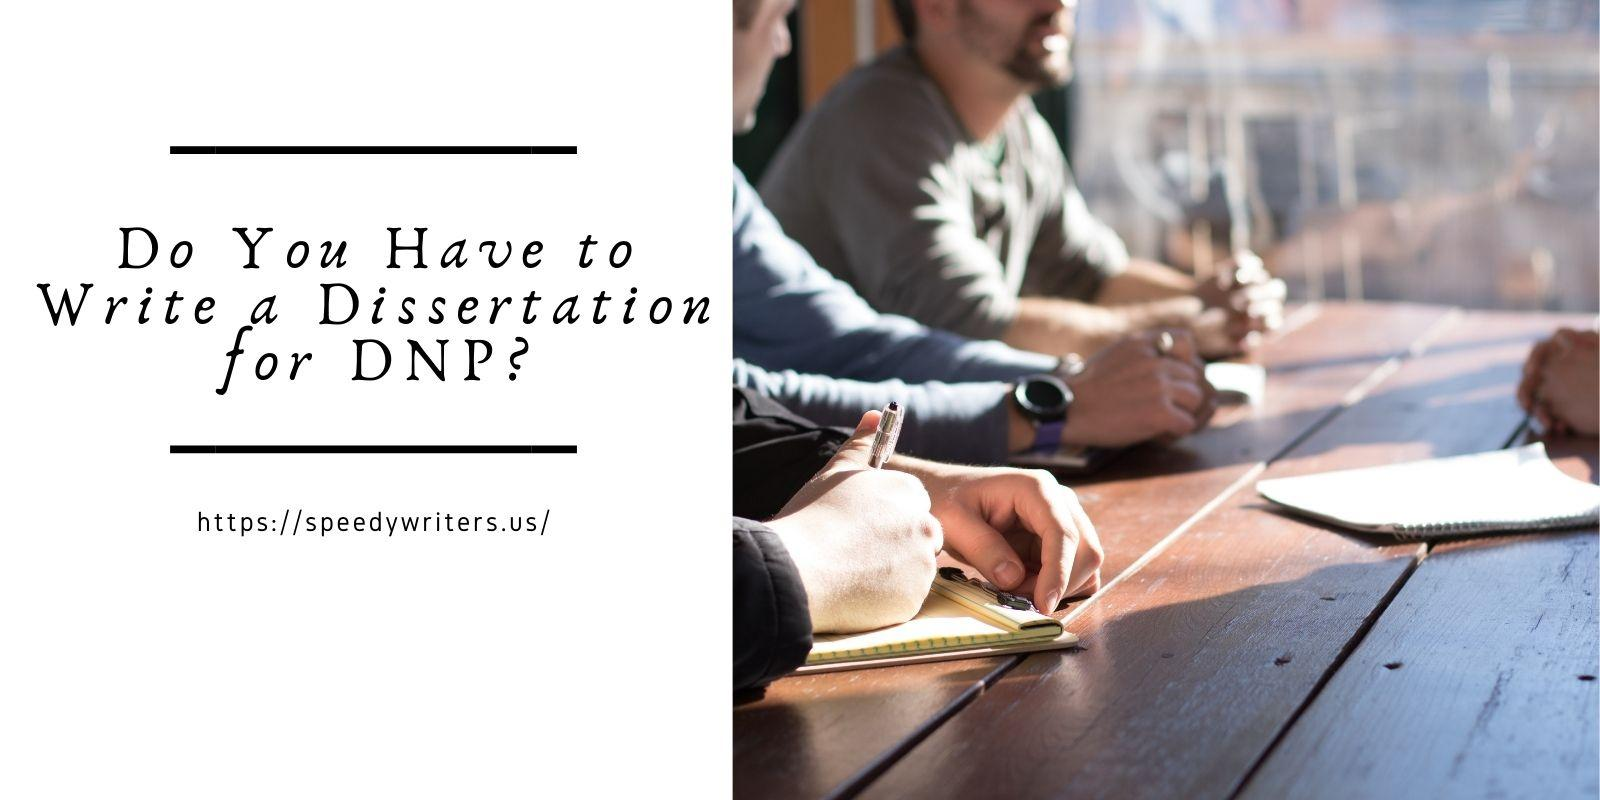 Do You Have to Write a Dissertation for DNP?